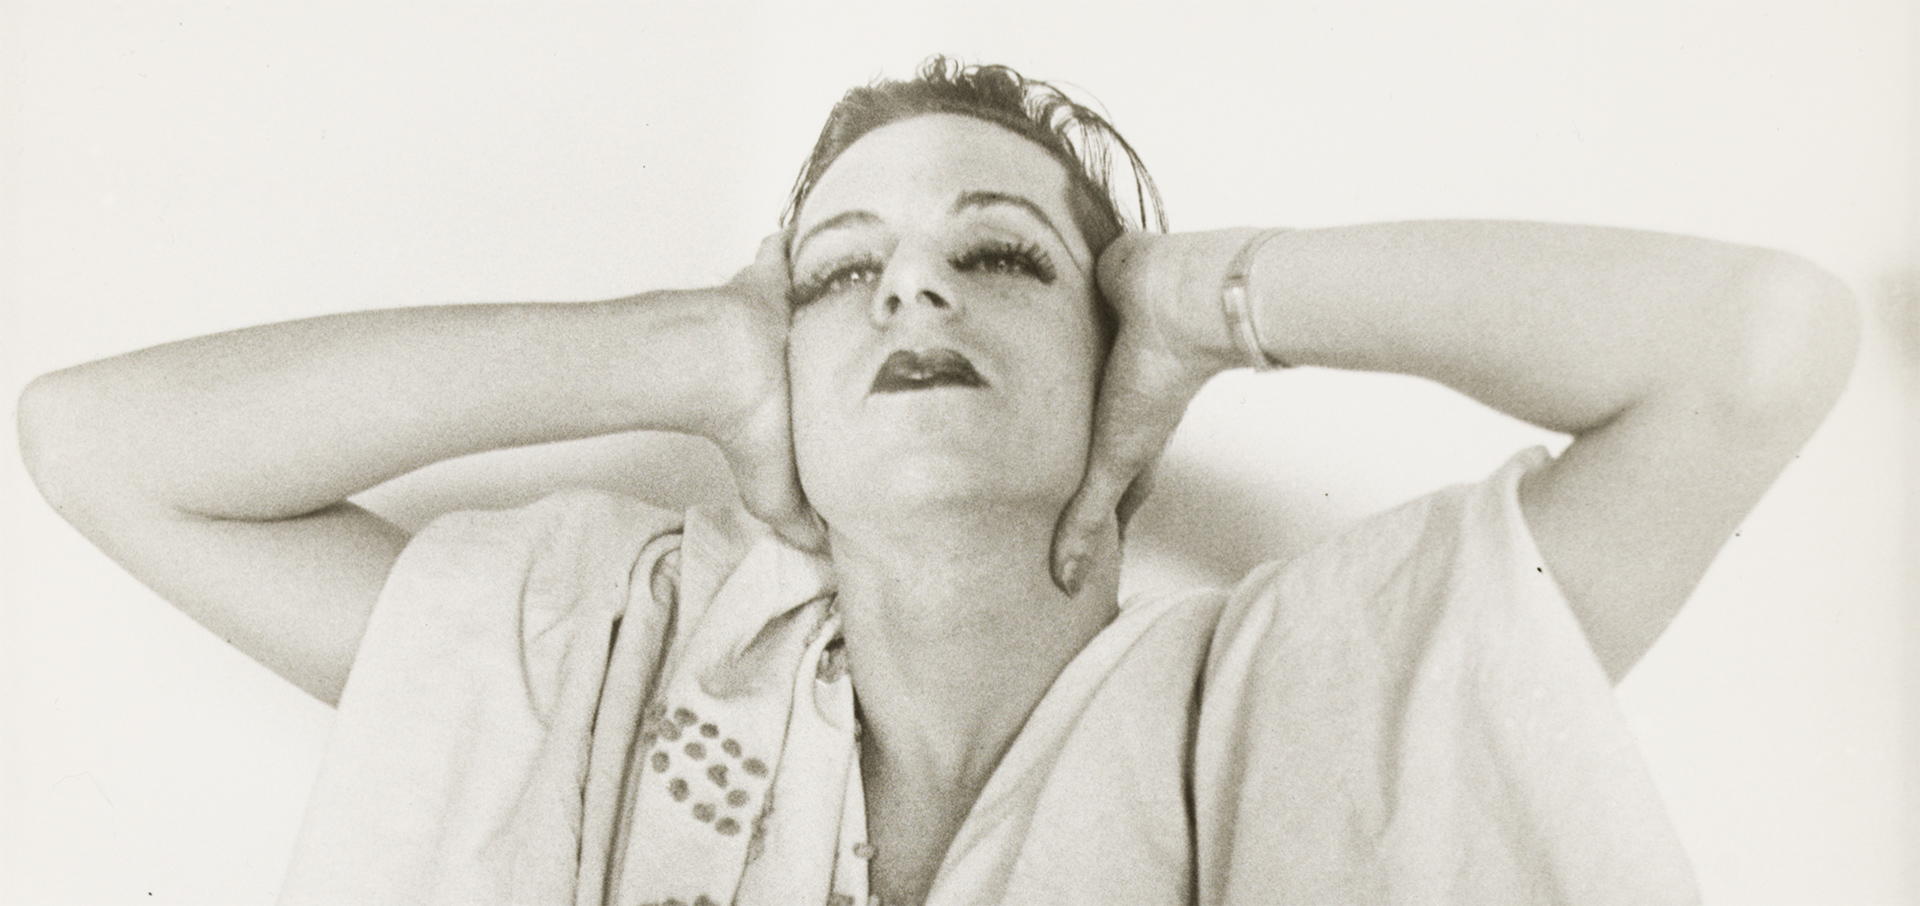 A detail from a photograph by Charles Henri Ford, titled Parker Tyler in Drag, dated c. 1940-1943.